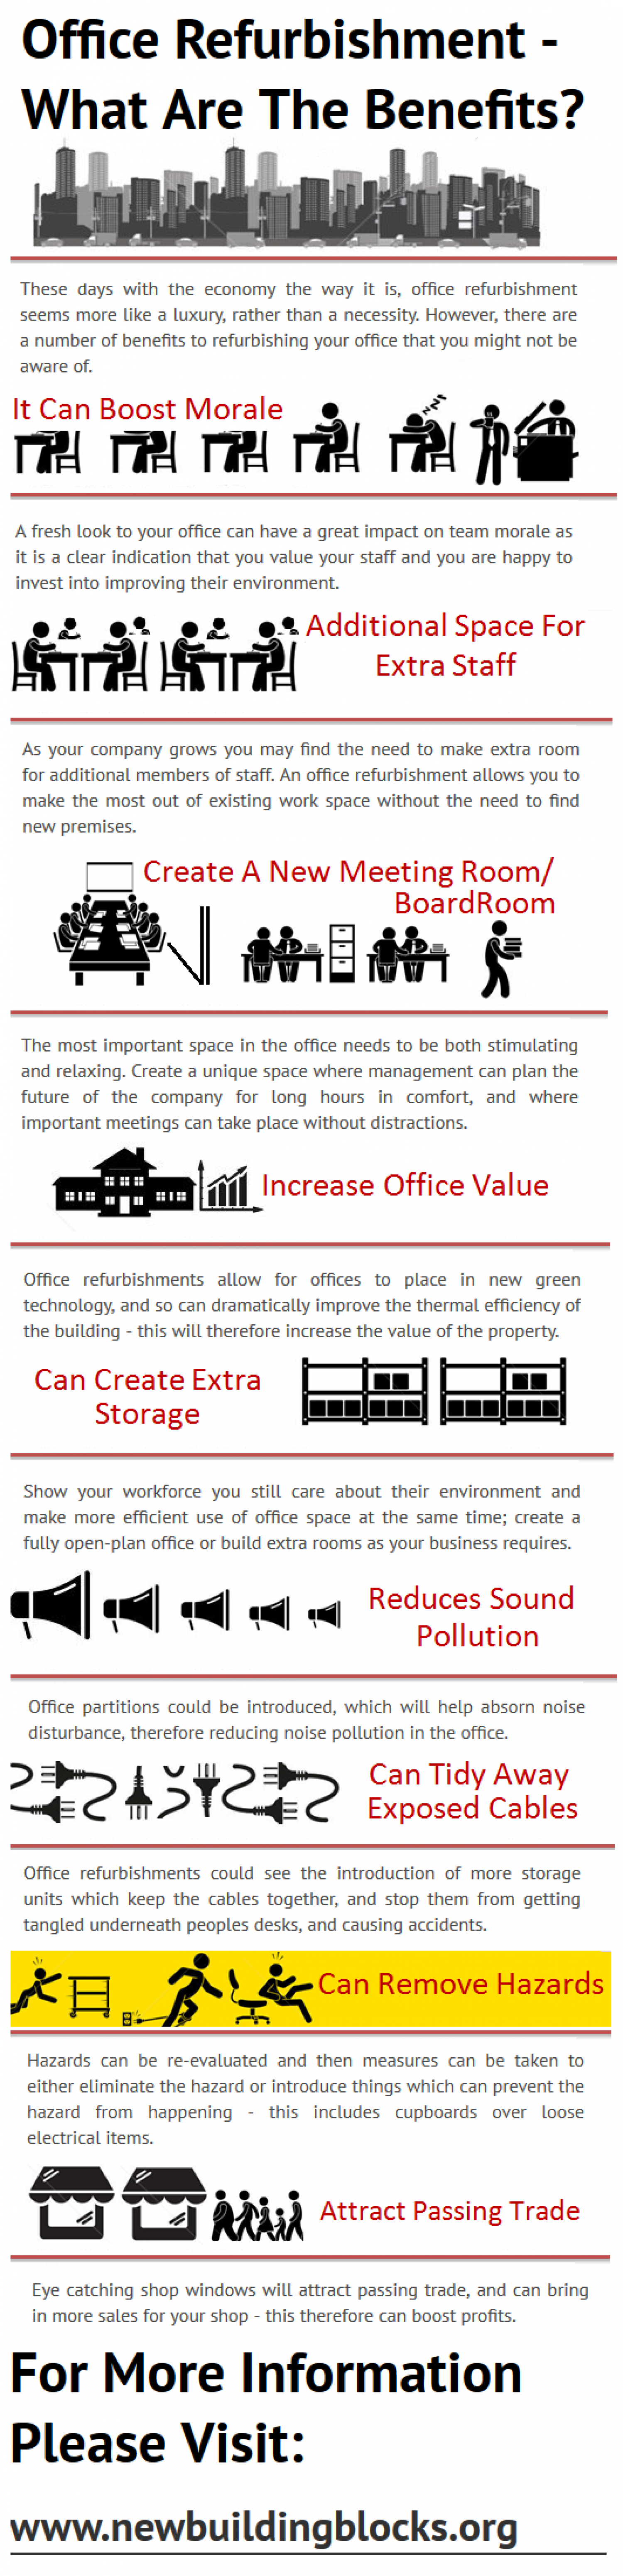 Office Refurbishment - What Are The Benefits? Infographic